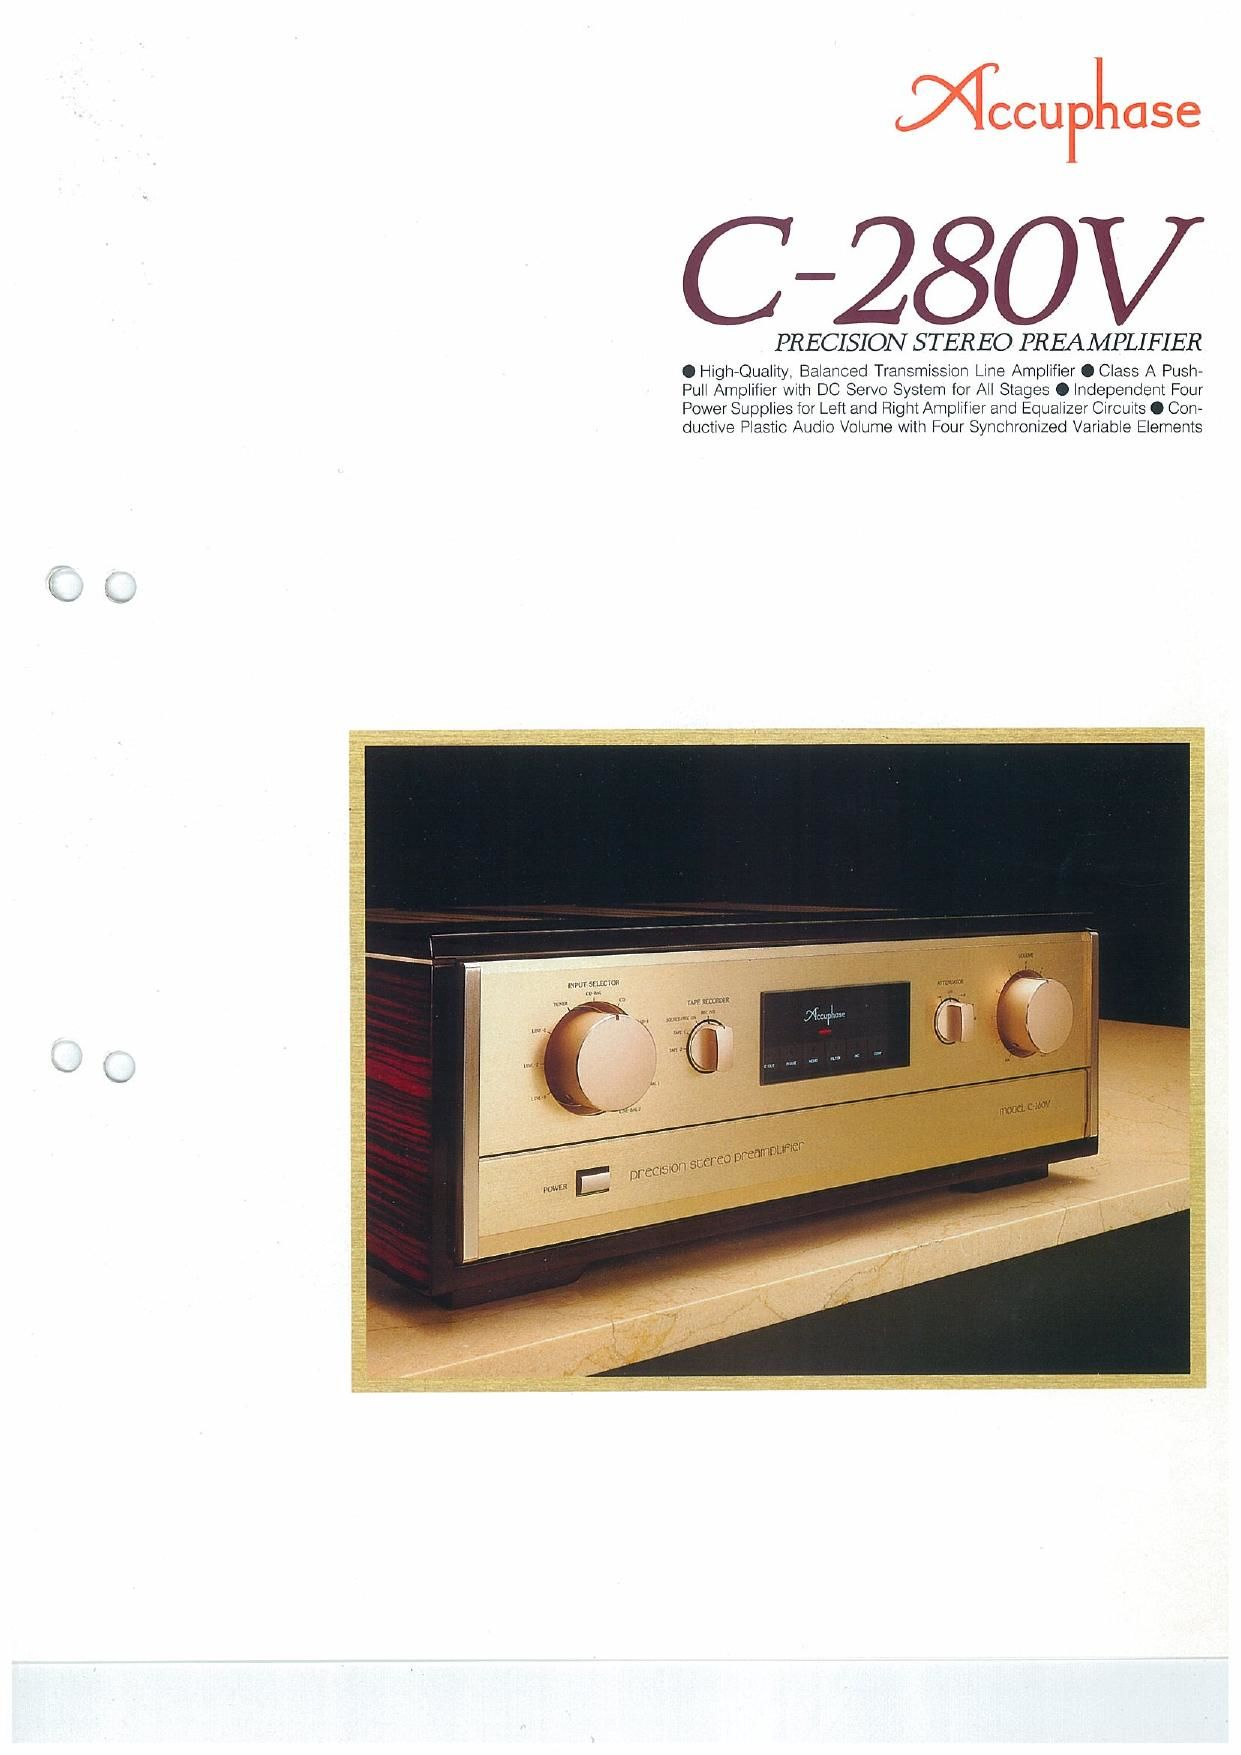 Accuphase C 280 V Brochure